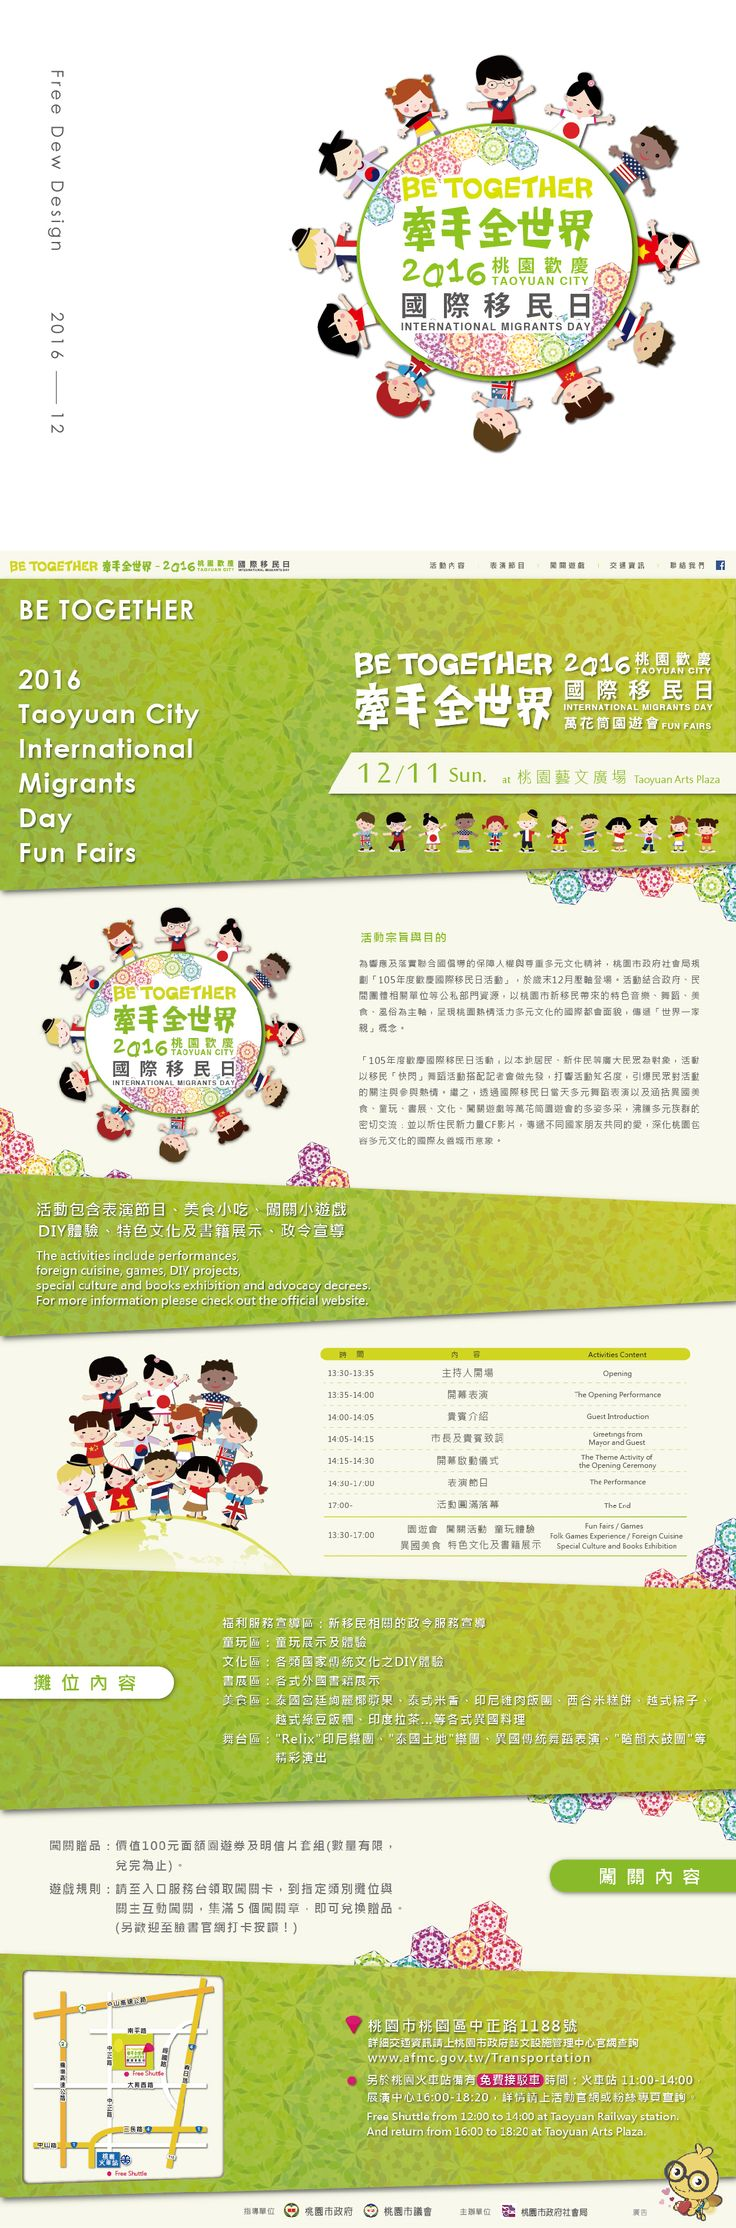 20161211 BE TOGETHER 牽手全世界‧國際移民日 / INTERNATIONAL MIGRANTS DAY